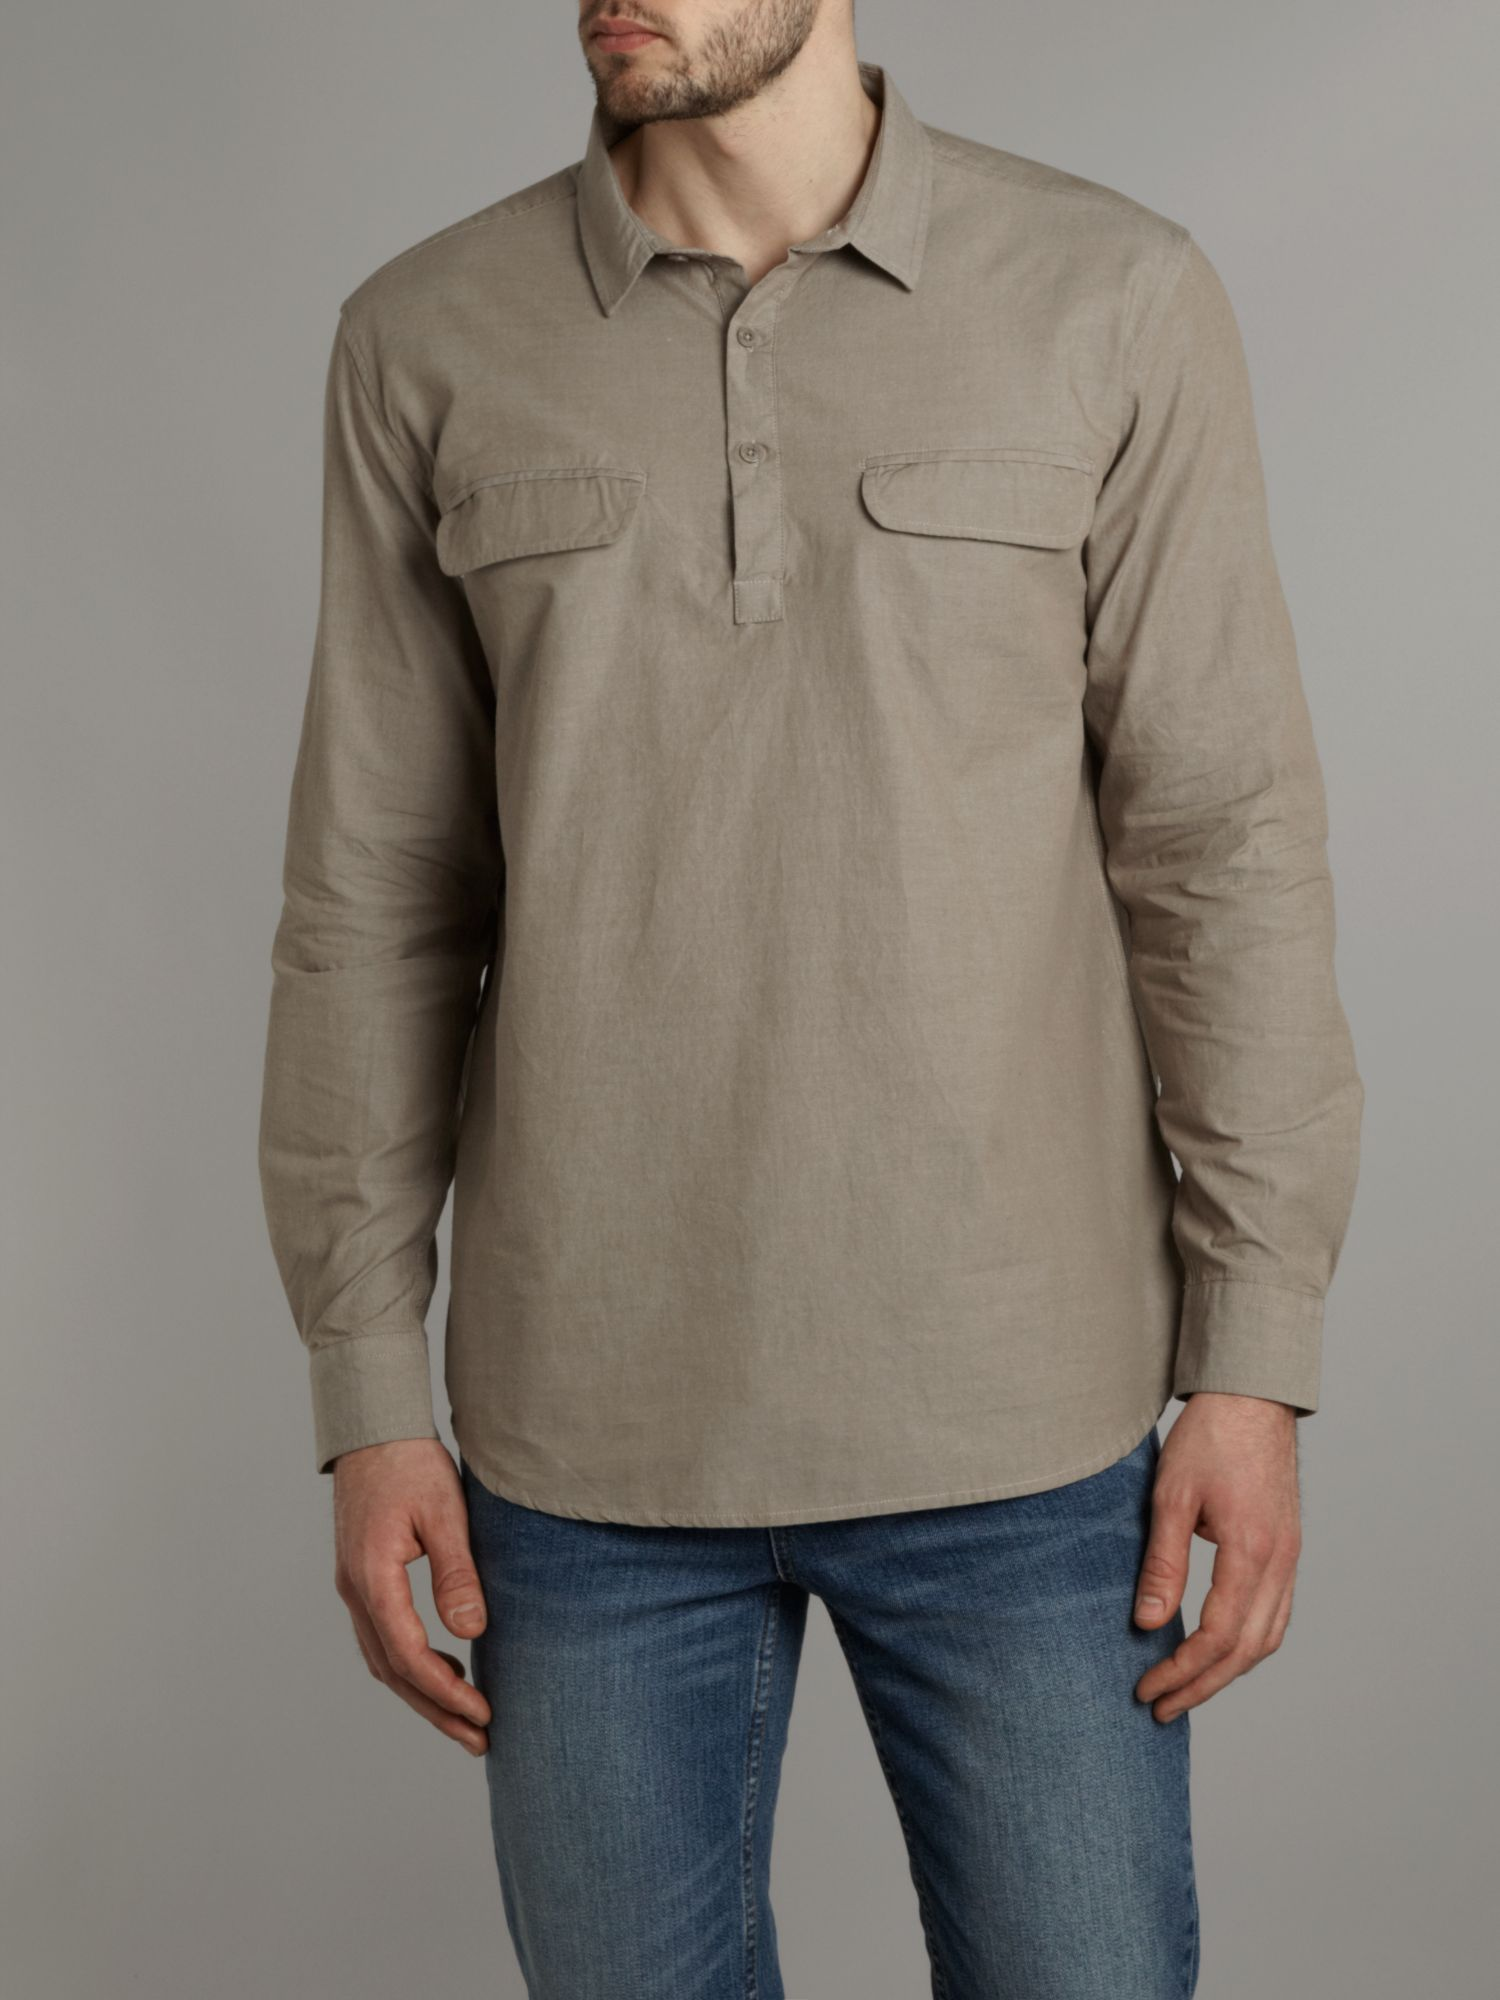 Two pocket long sleeved shirt